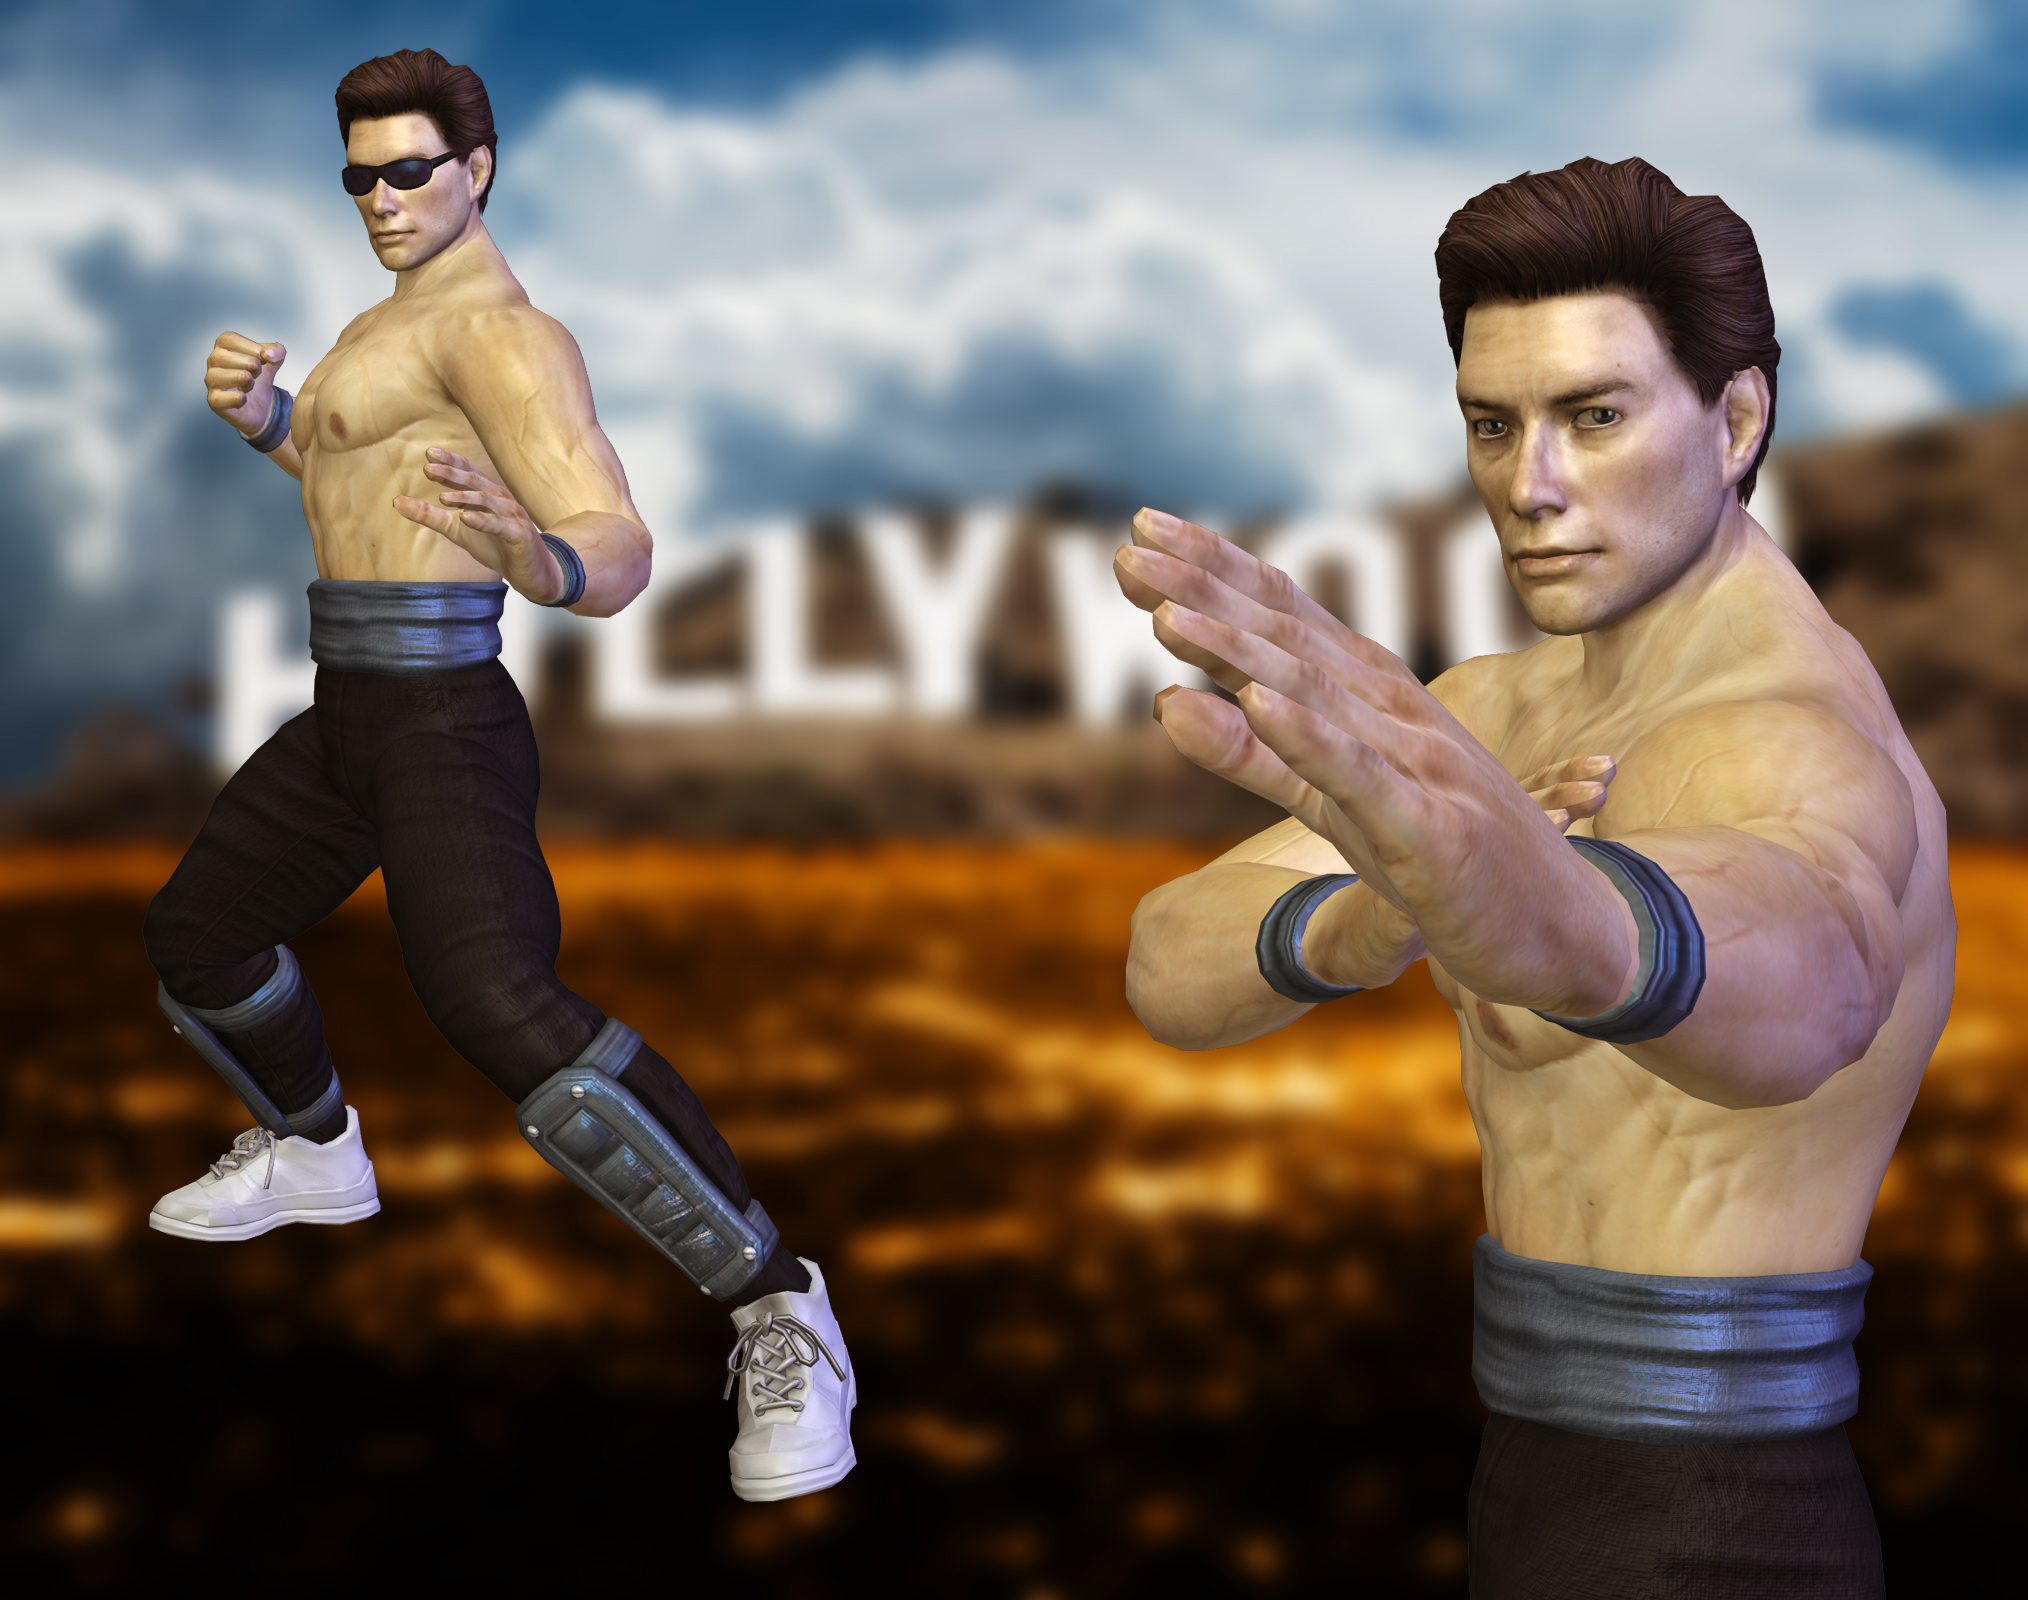 johnny cage by airachnid1301 - photo #16